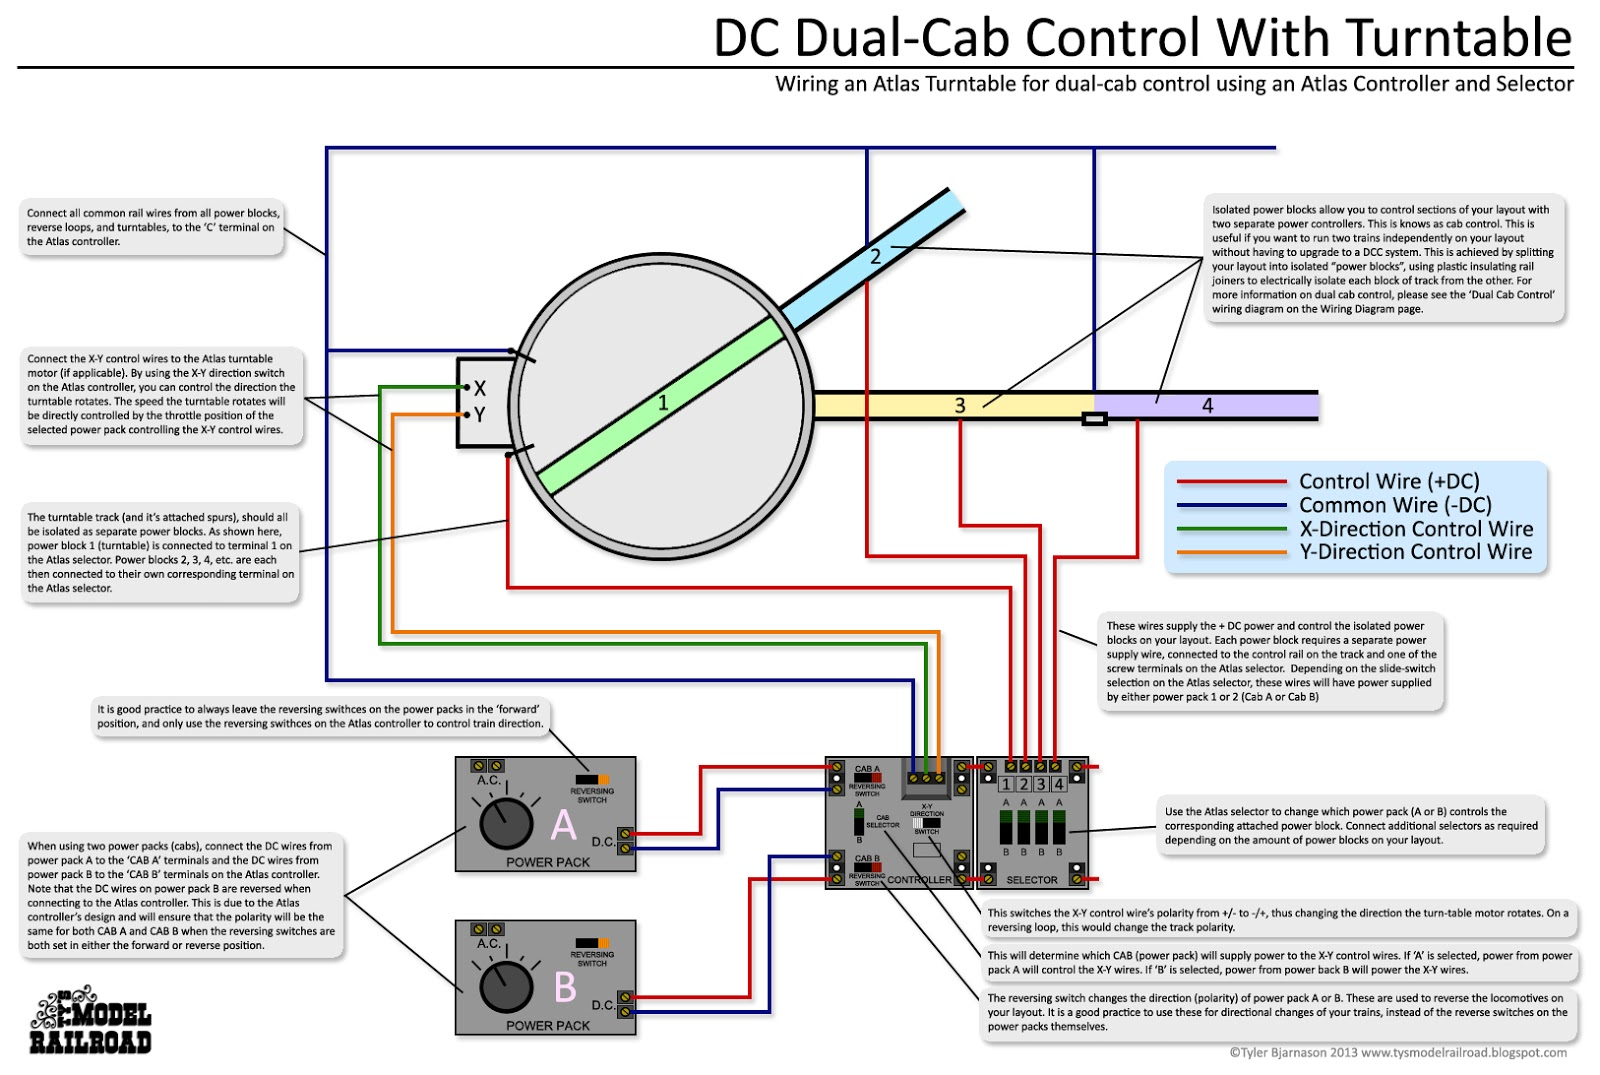 dc wiring diagrams wiring library 220 breaker box wiring diagram how to use dual cab control [ 1600 x 1075 Pixel ]